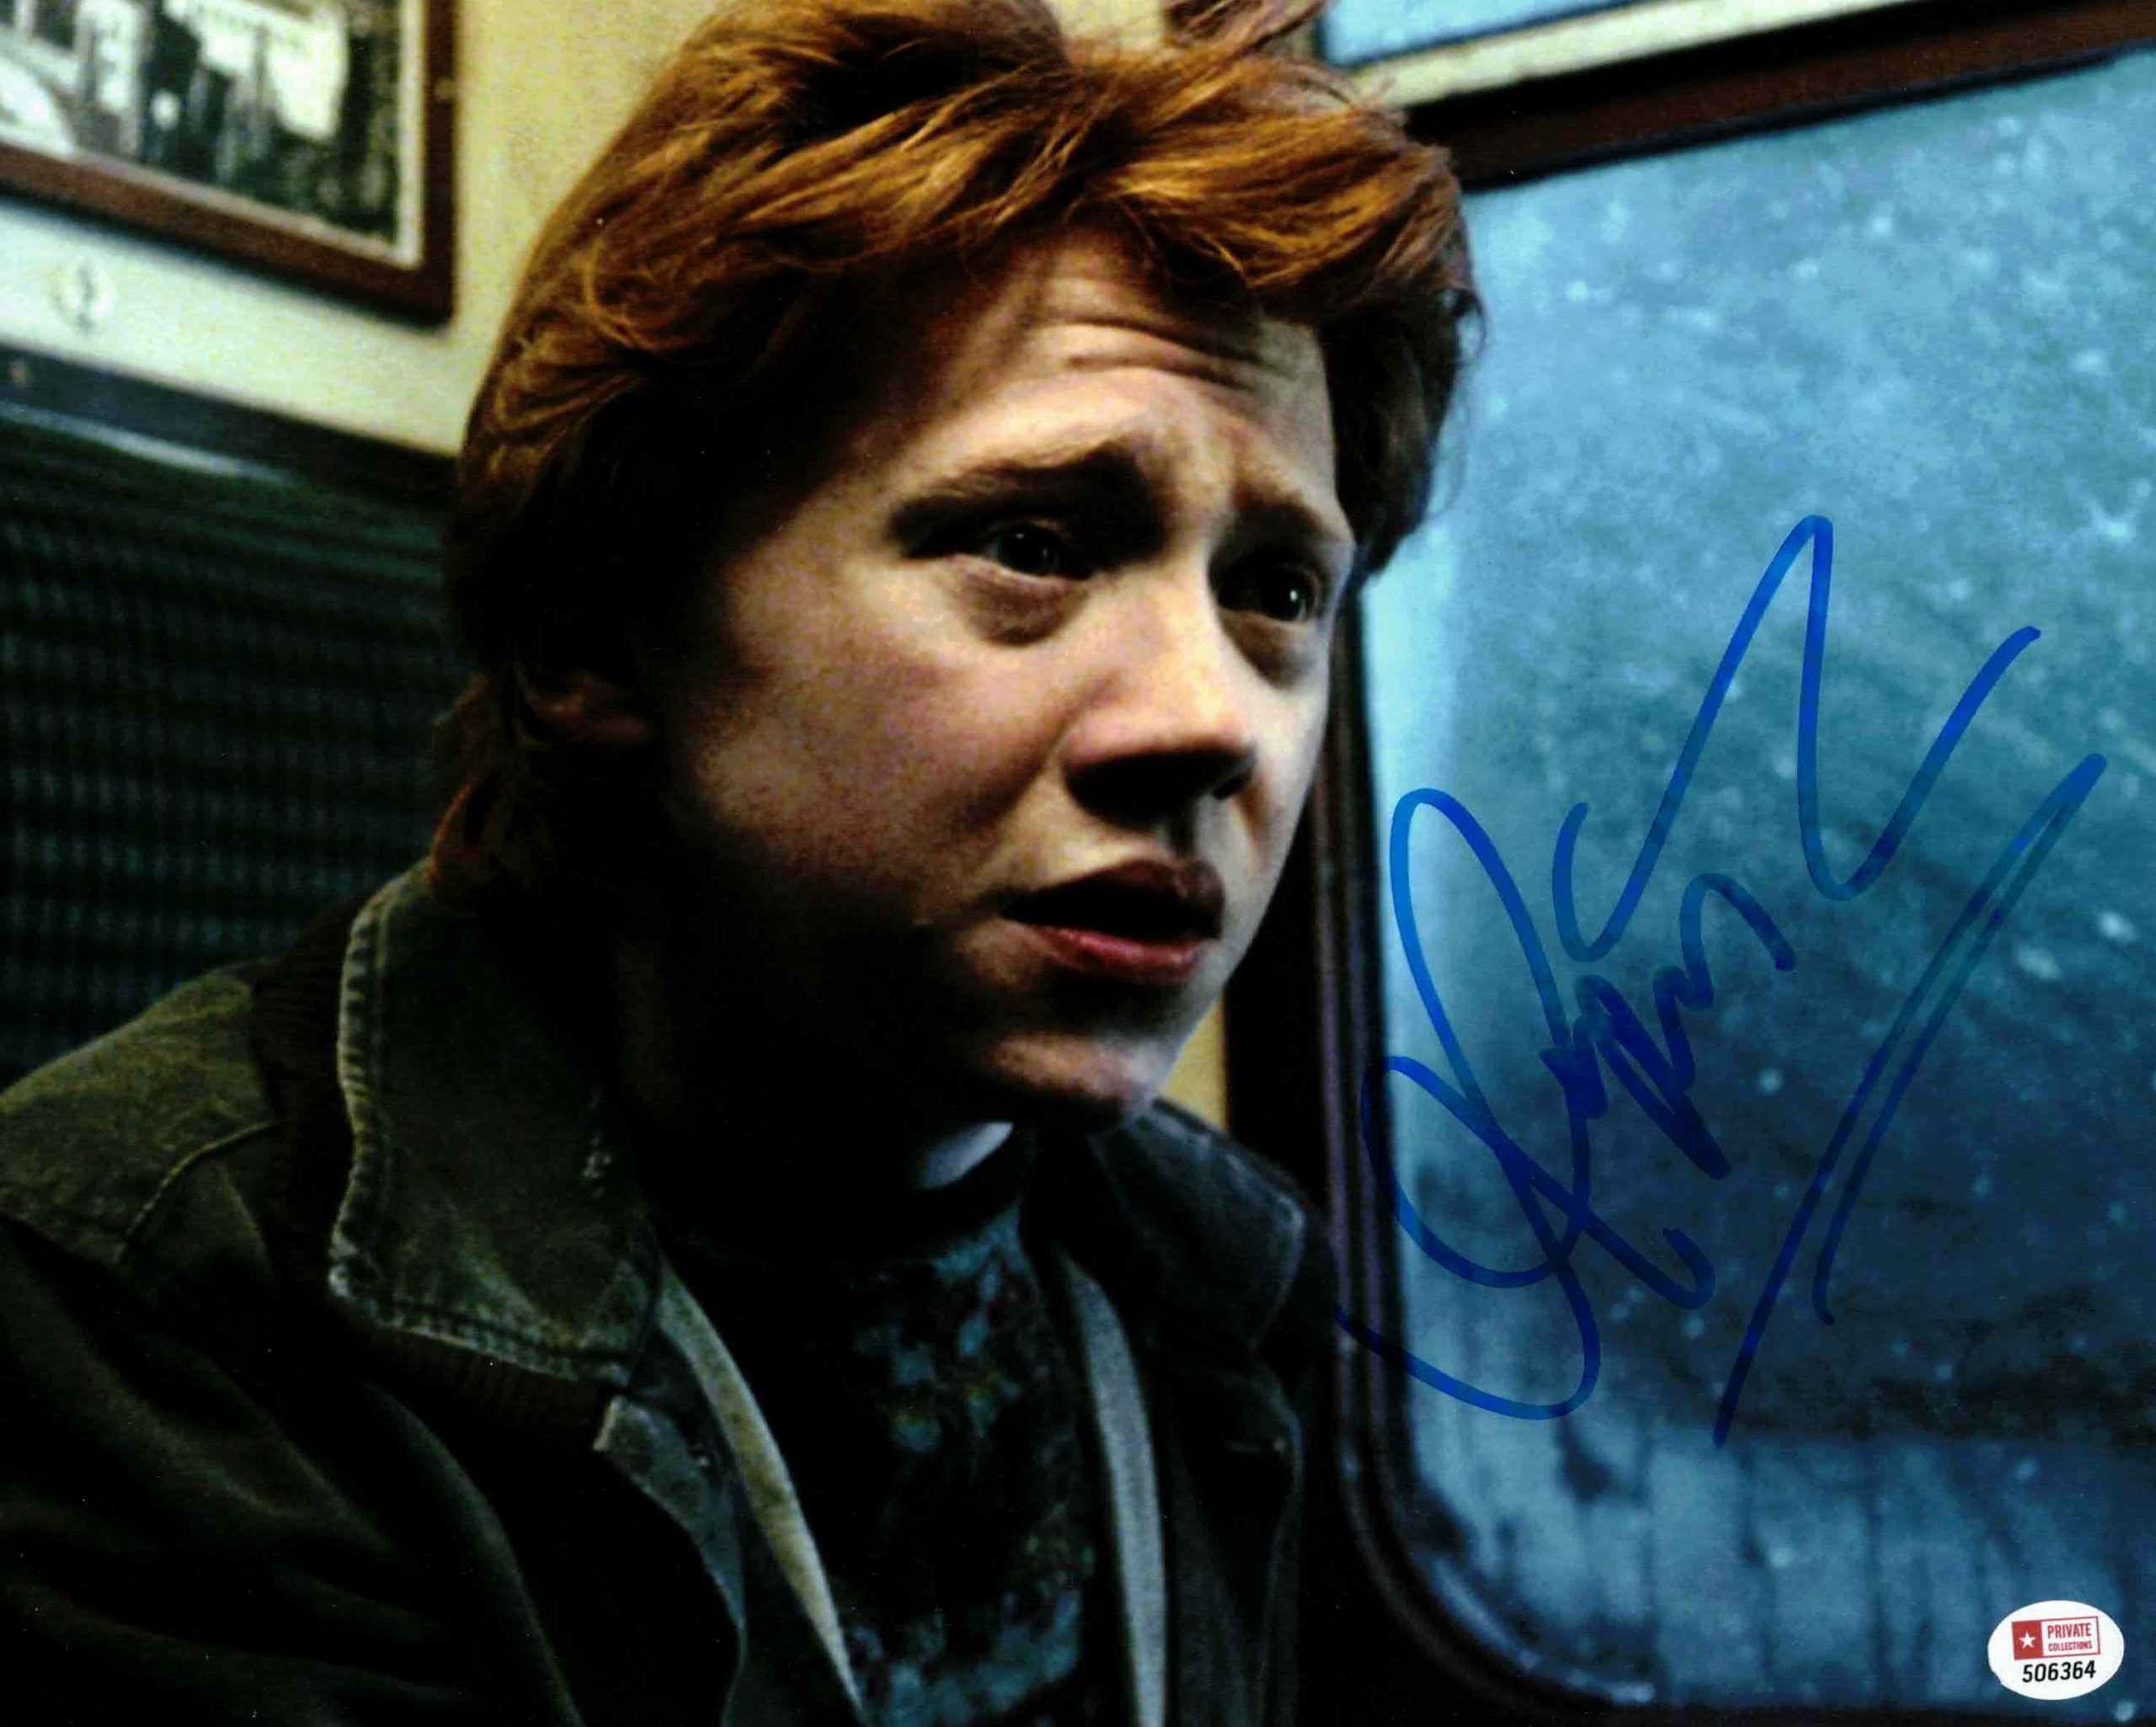 Rupert Grint / Ron Weasley, Harry Potter - autogram